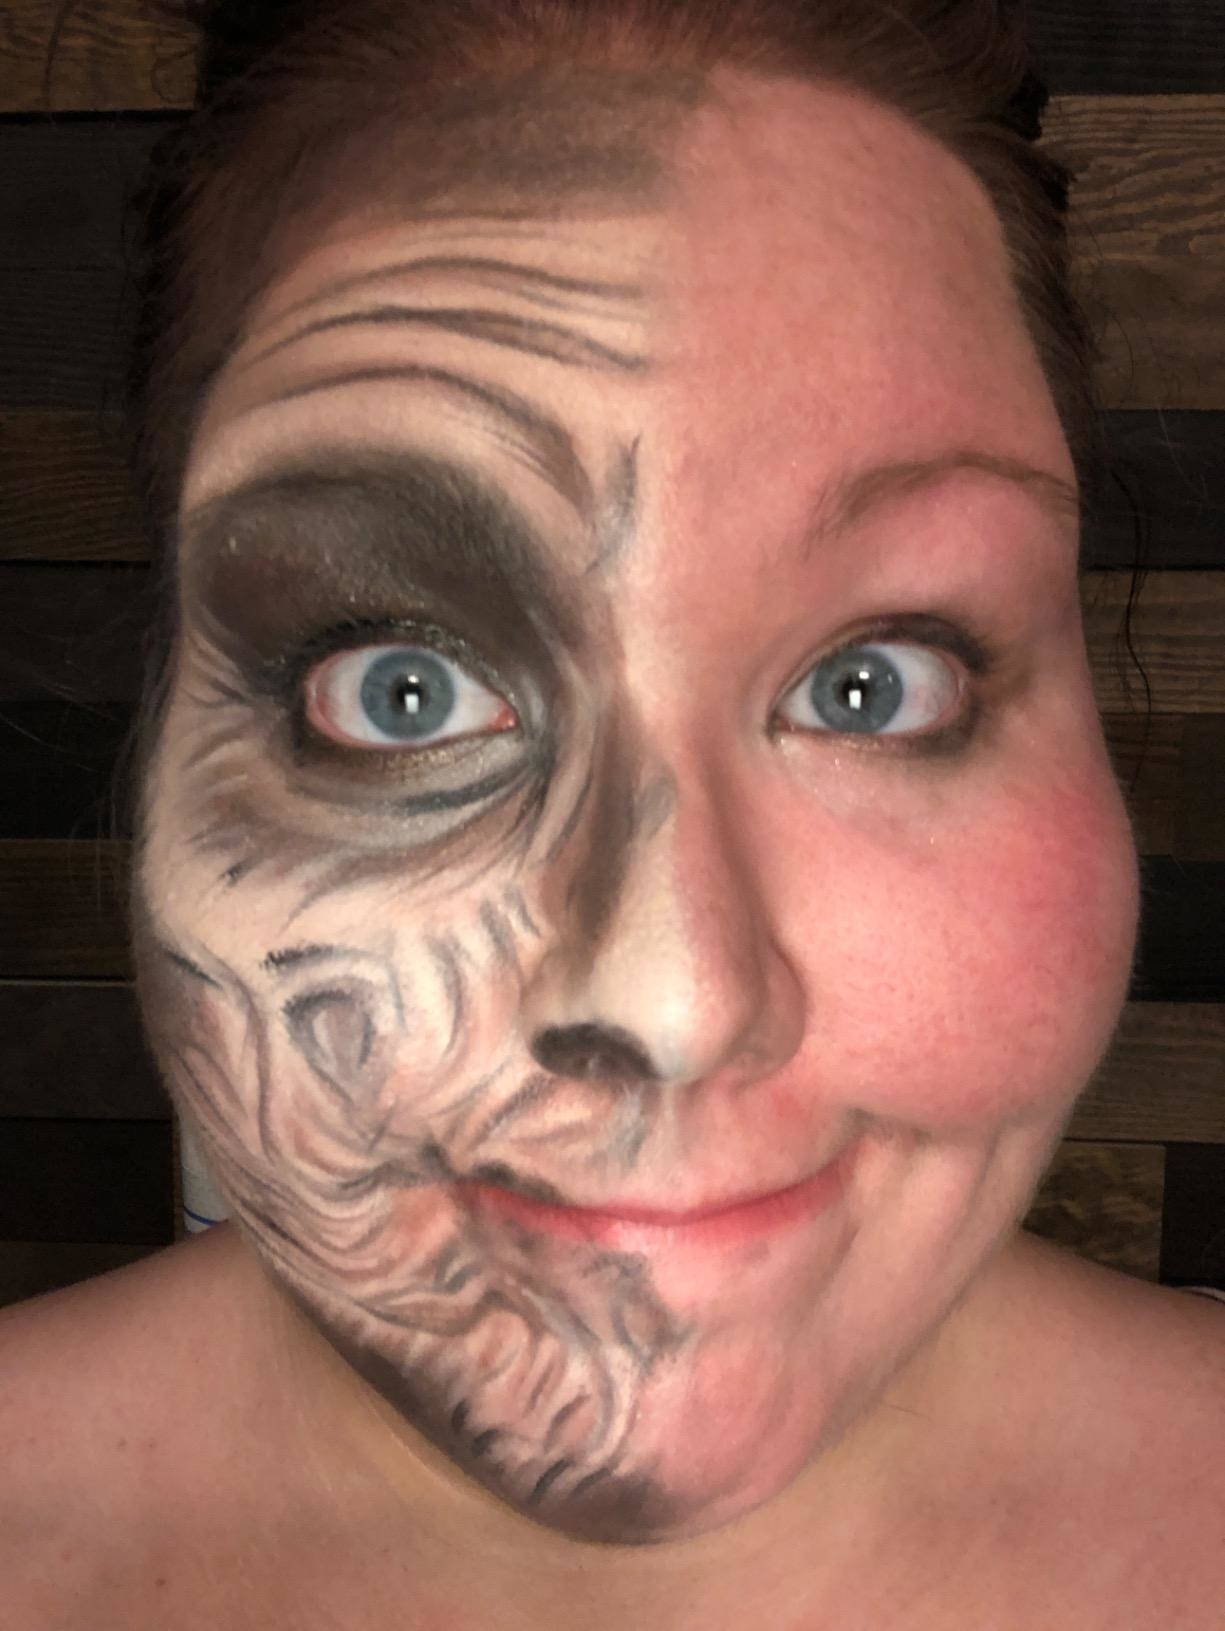 A reviewer wearing full-face Halloween makeup, with one side intact and the other side pretty much completely removed except for mascara